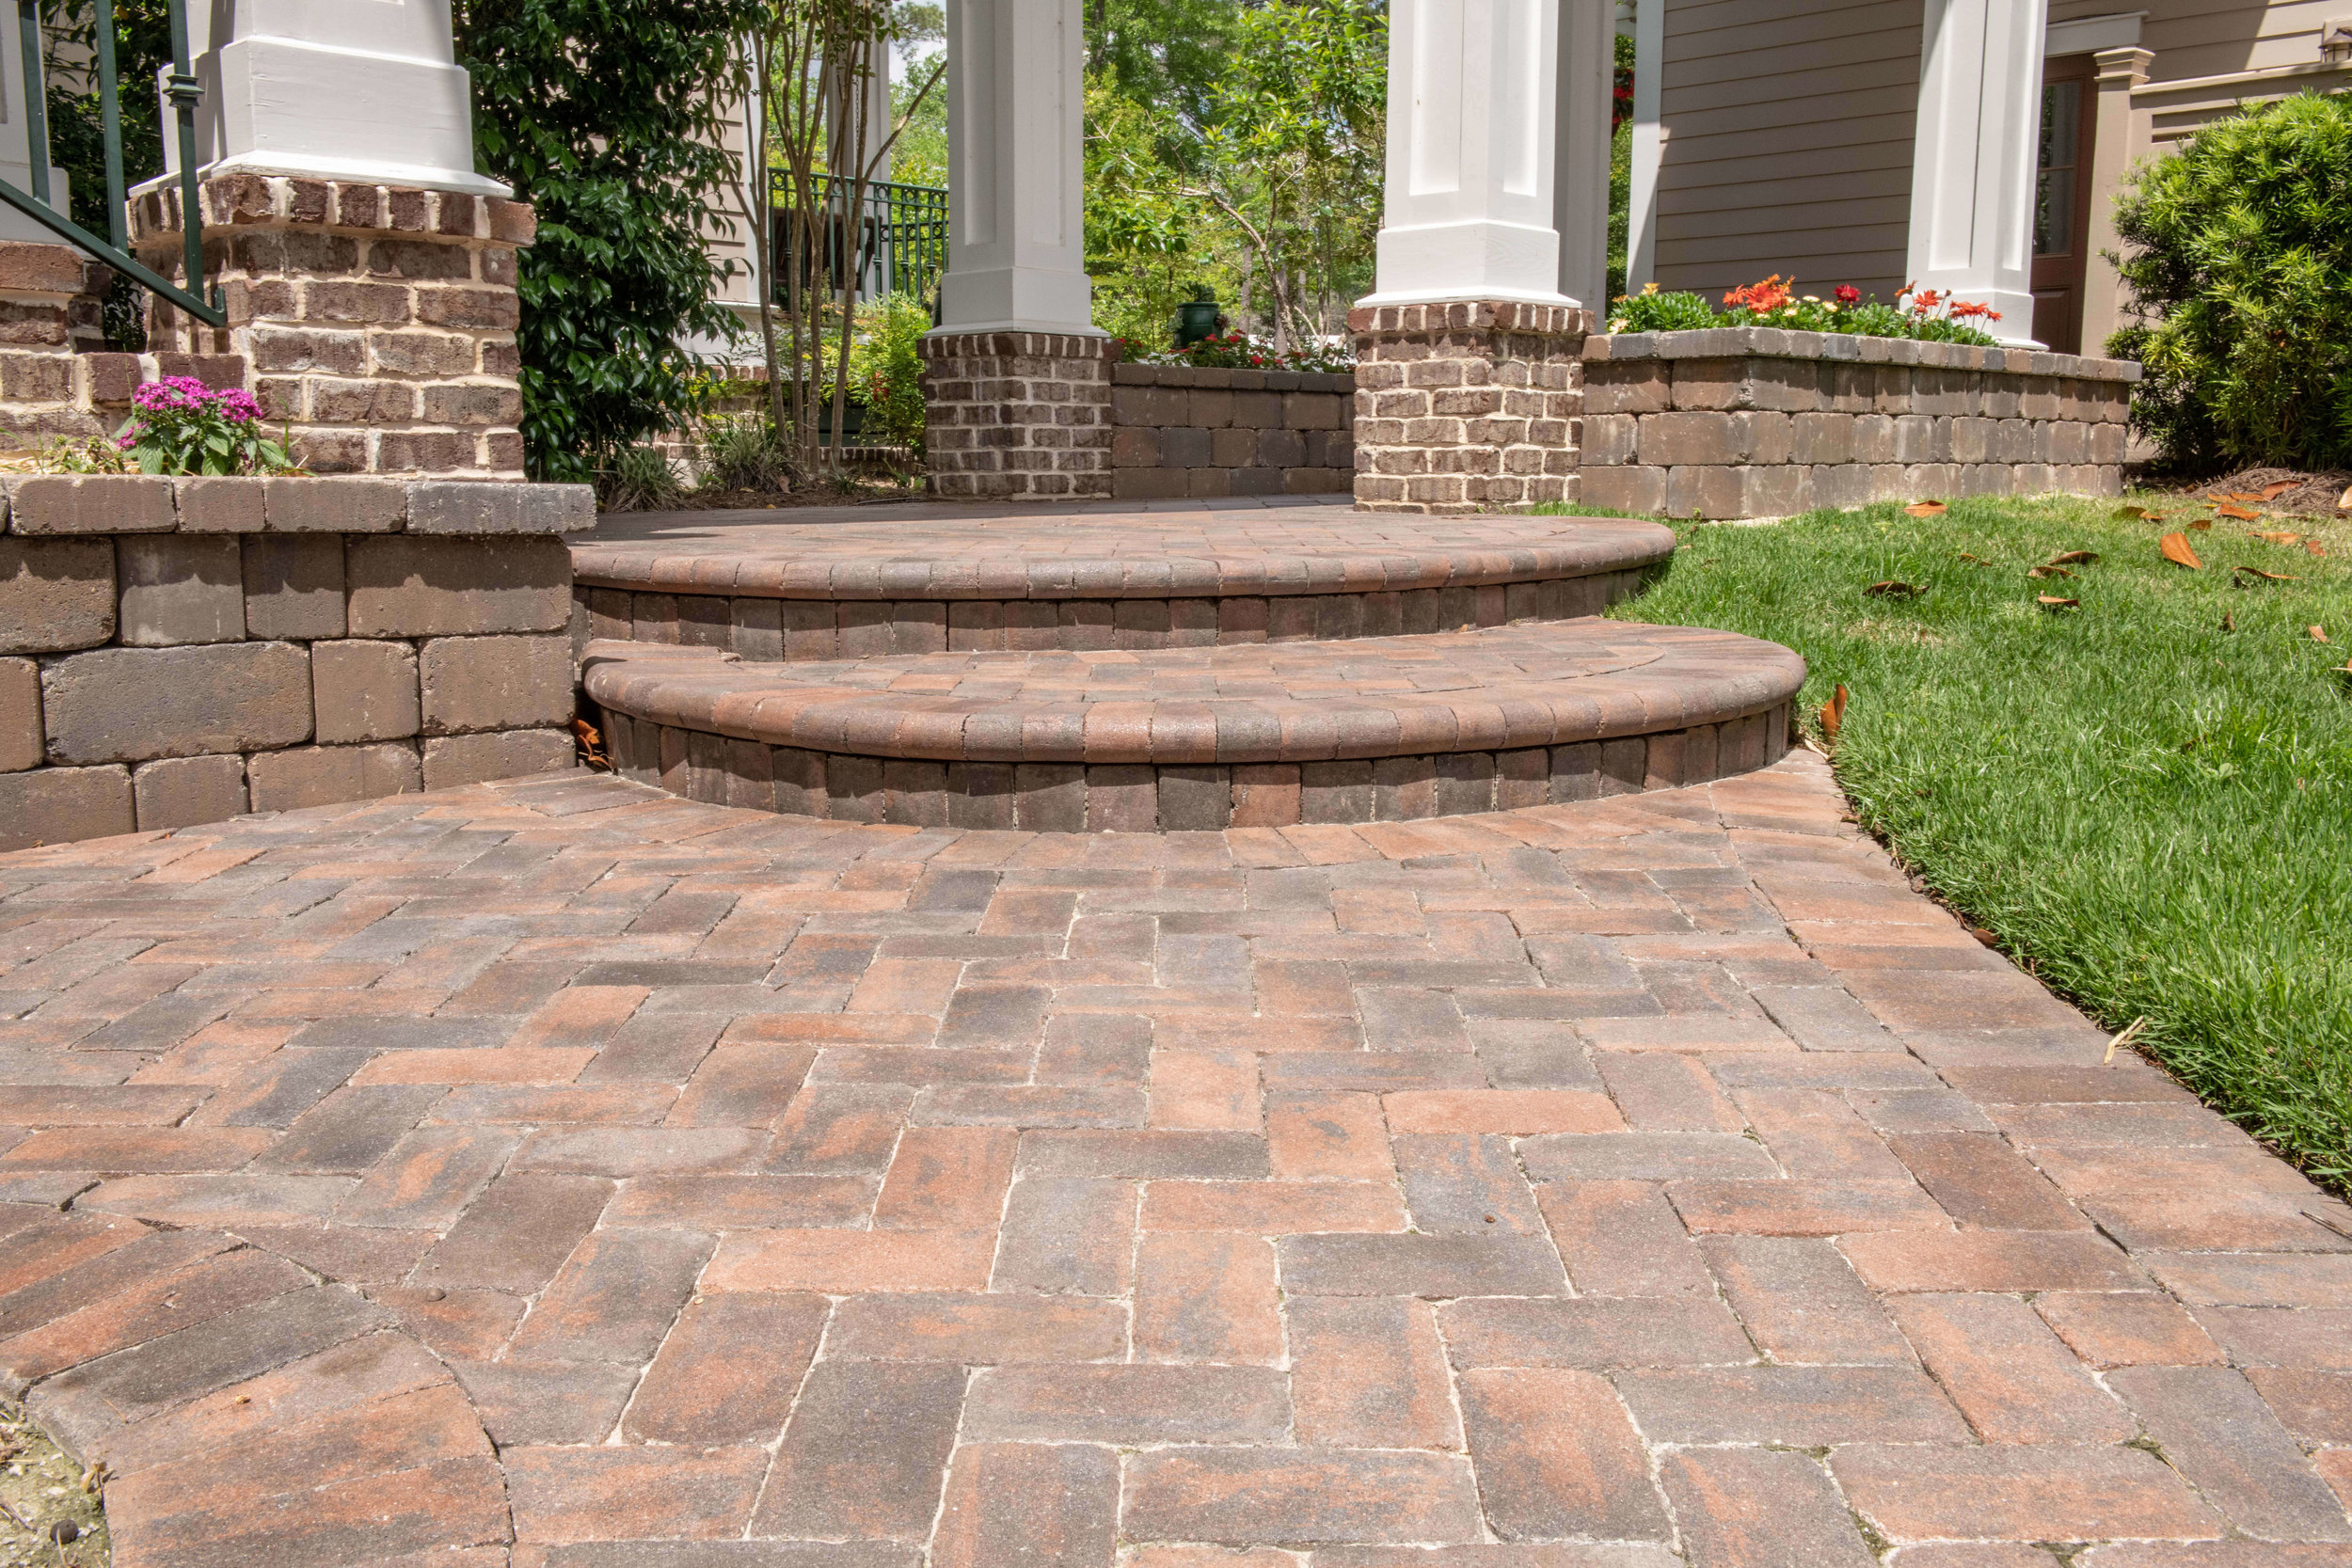 Red Brick Paver Steps - Hilton Head Island, SC